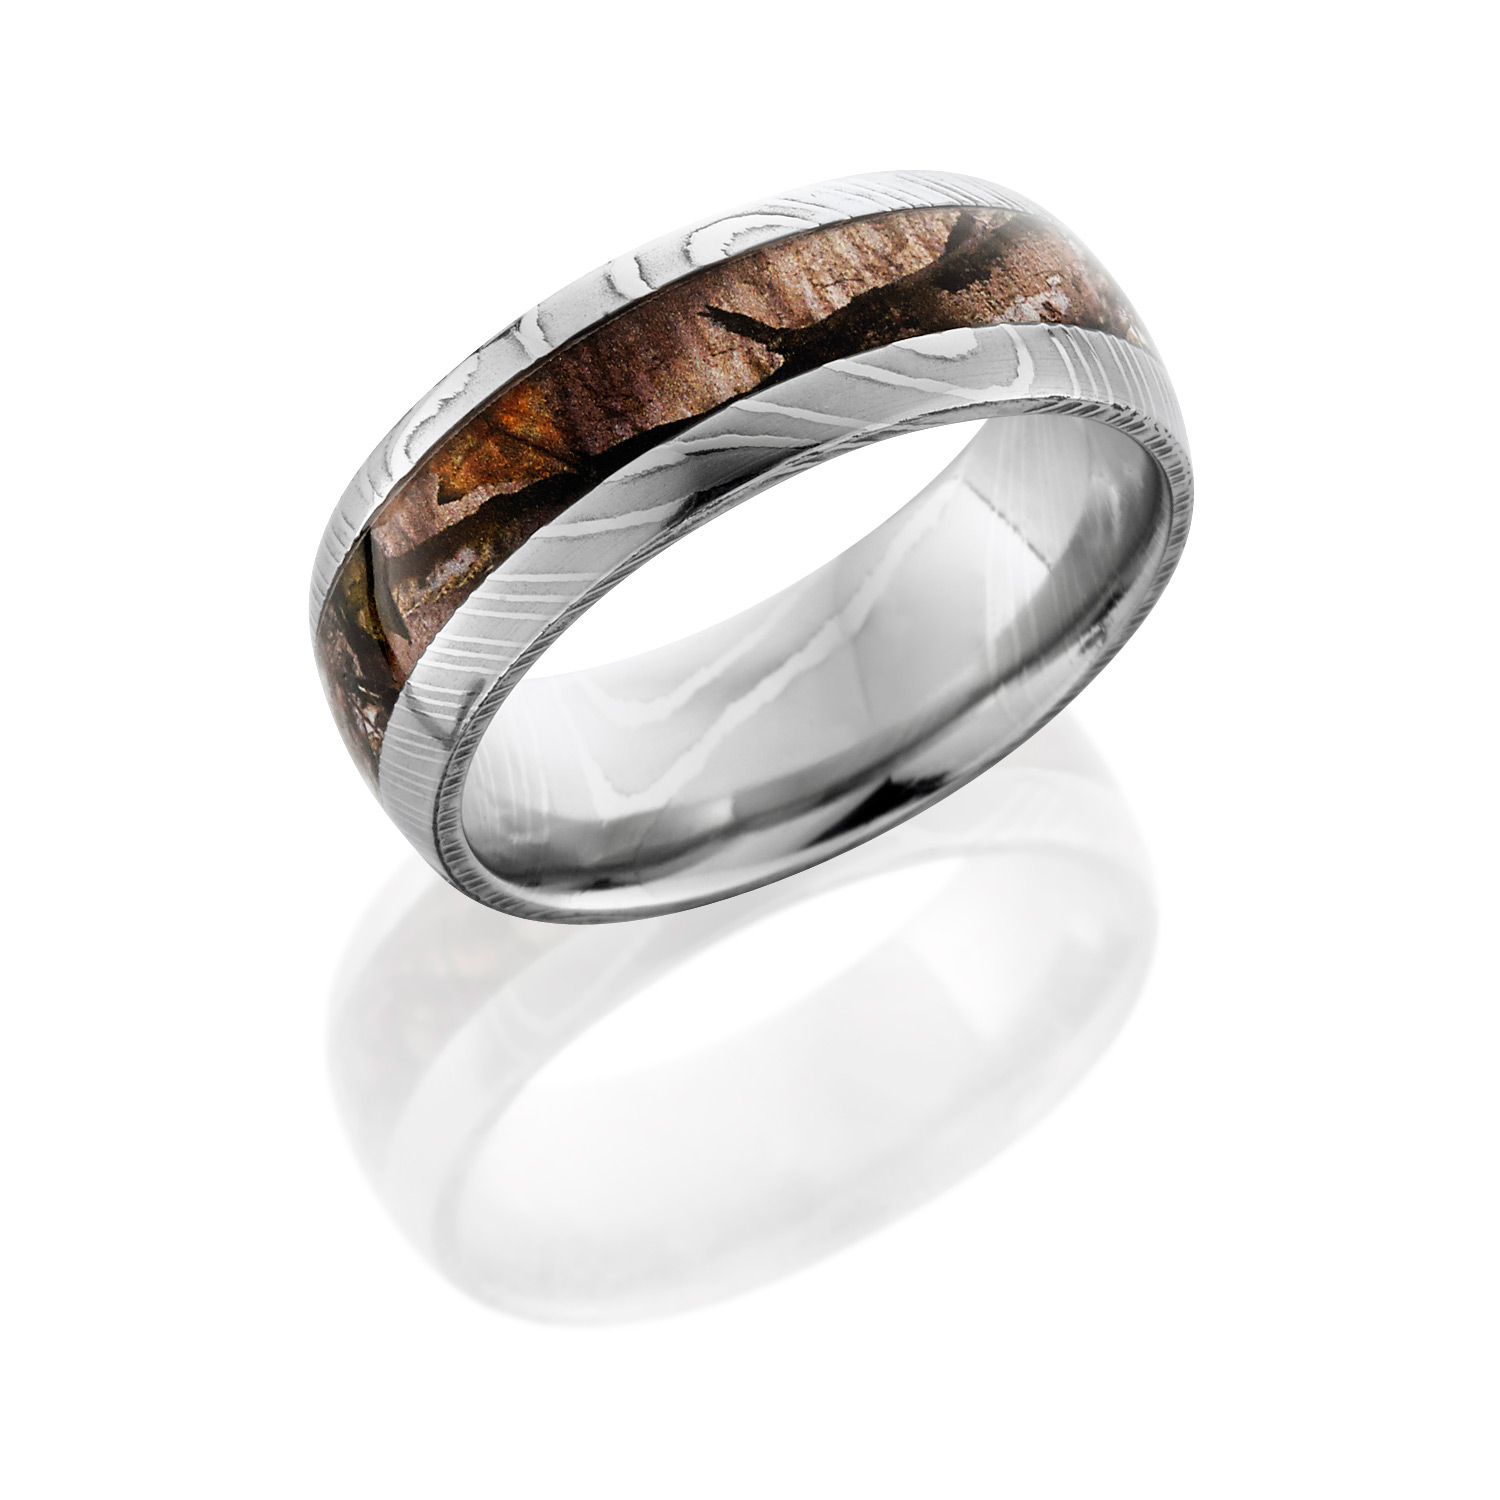 Lashbrook D8d14 Moctreestand Polish Damascus Steel Wedding Ring Or Band Tq Diamonds